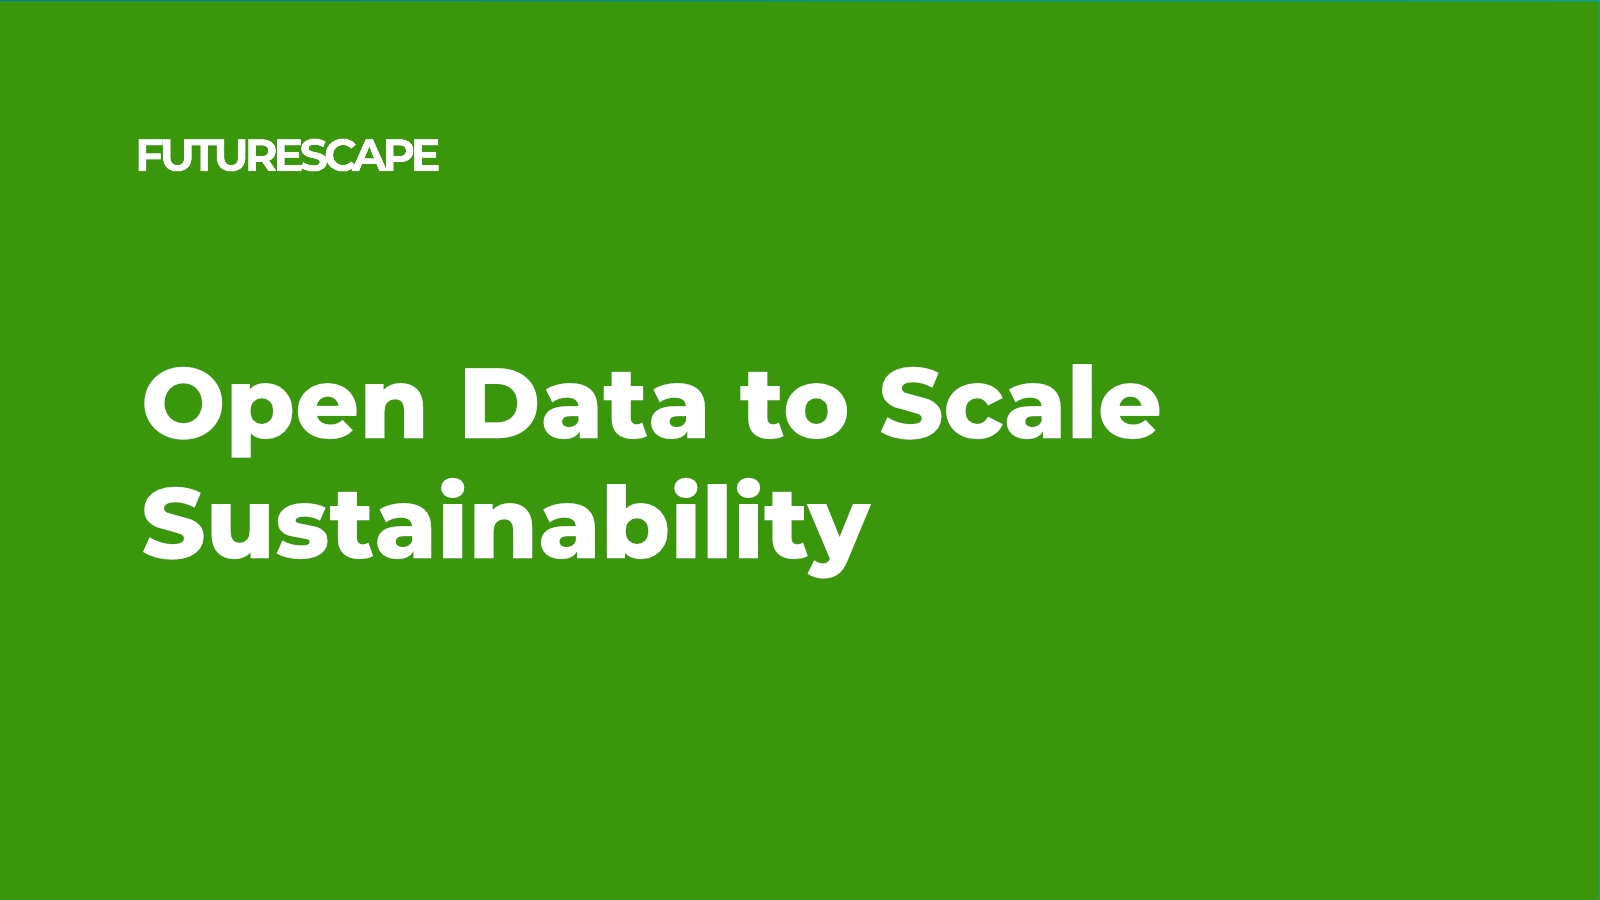 futurescape_social-card-Open Data to Scale Sustainability